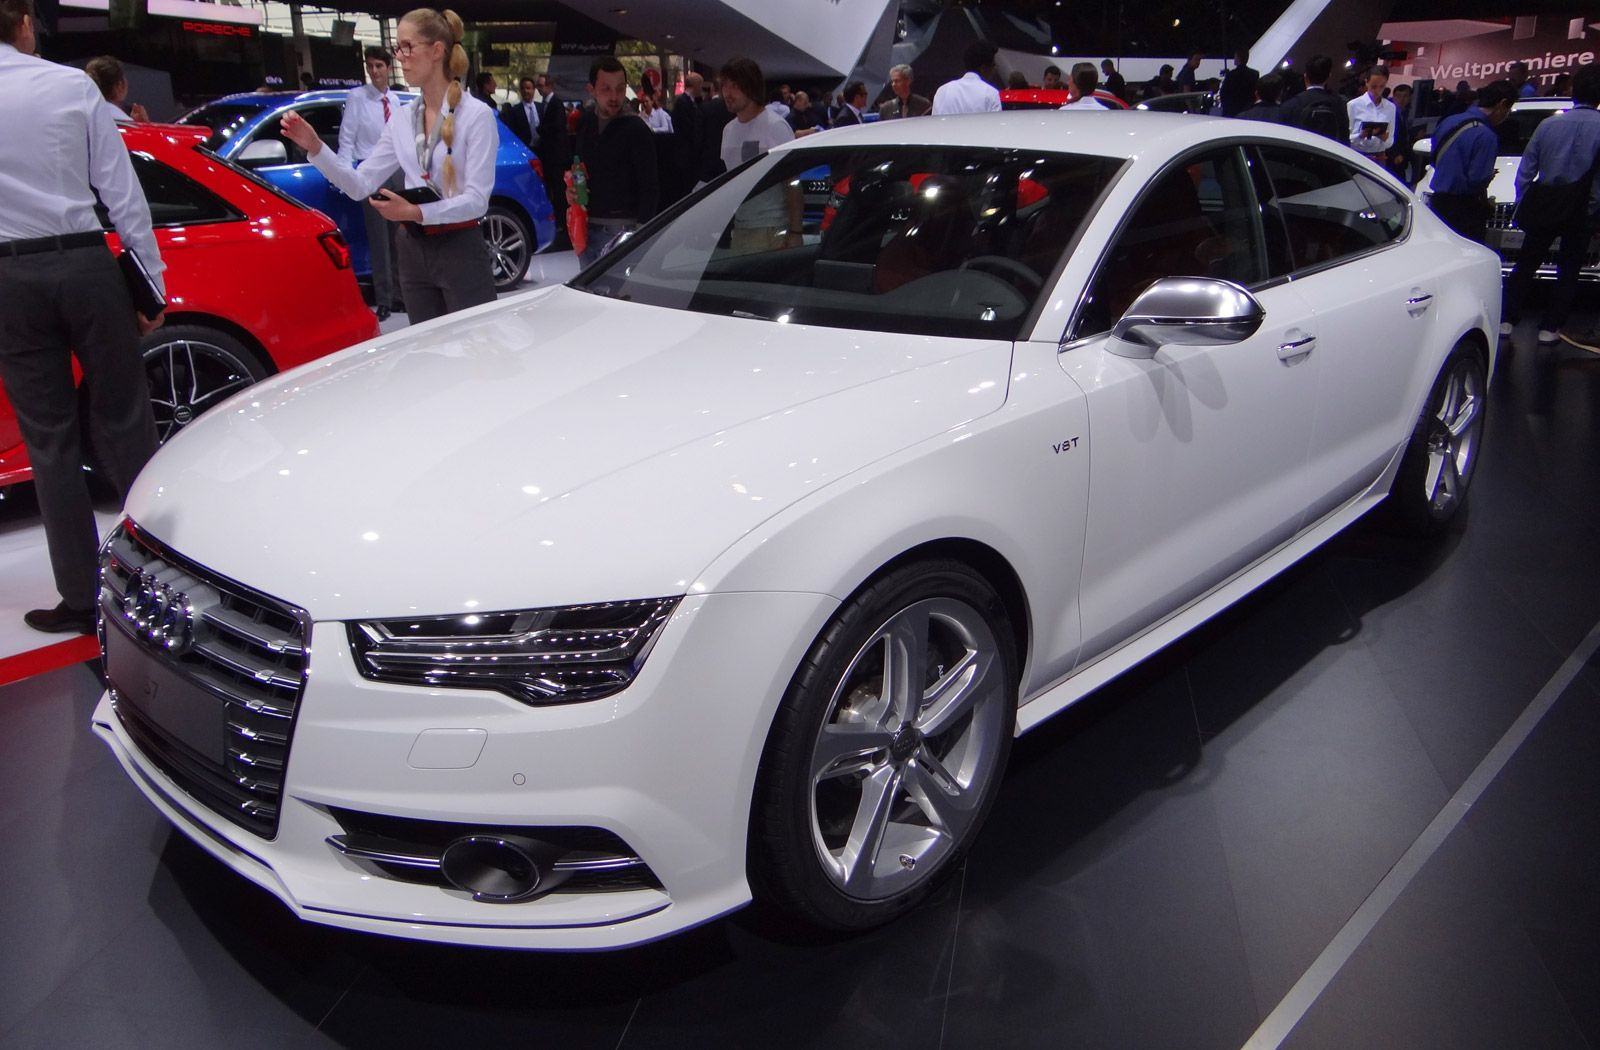 2016 audi a7 white. 2016 audi a7 and s7 full details live photos video see white h